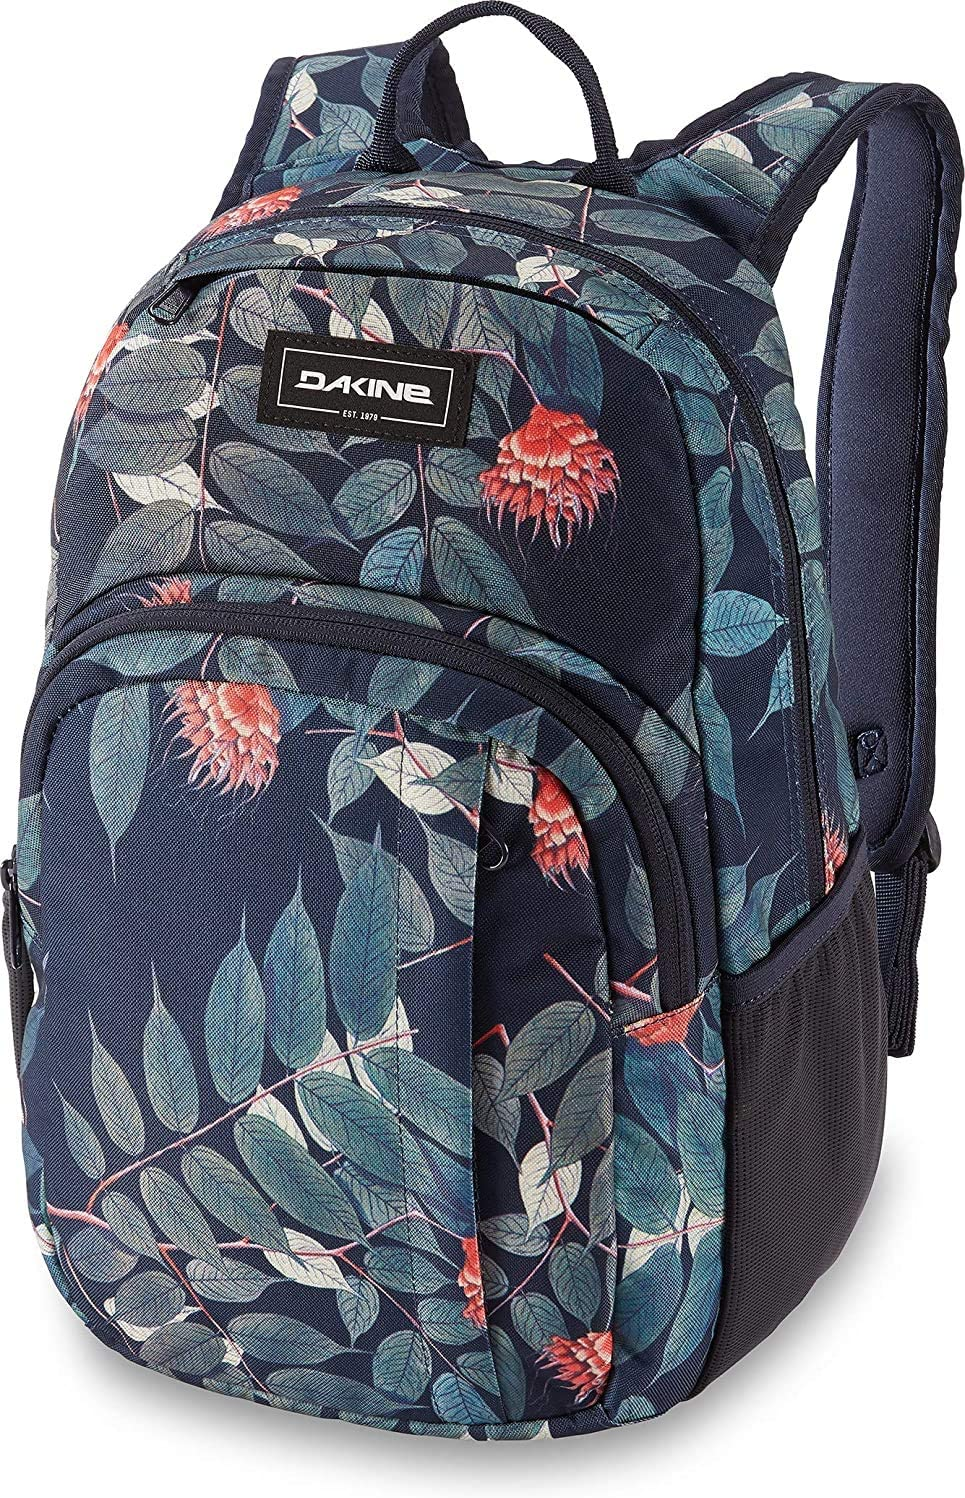 Dakine Campus Backpack for trips to School or the Urban Commute